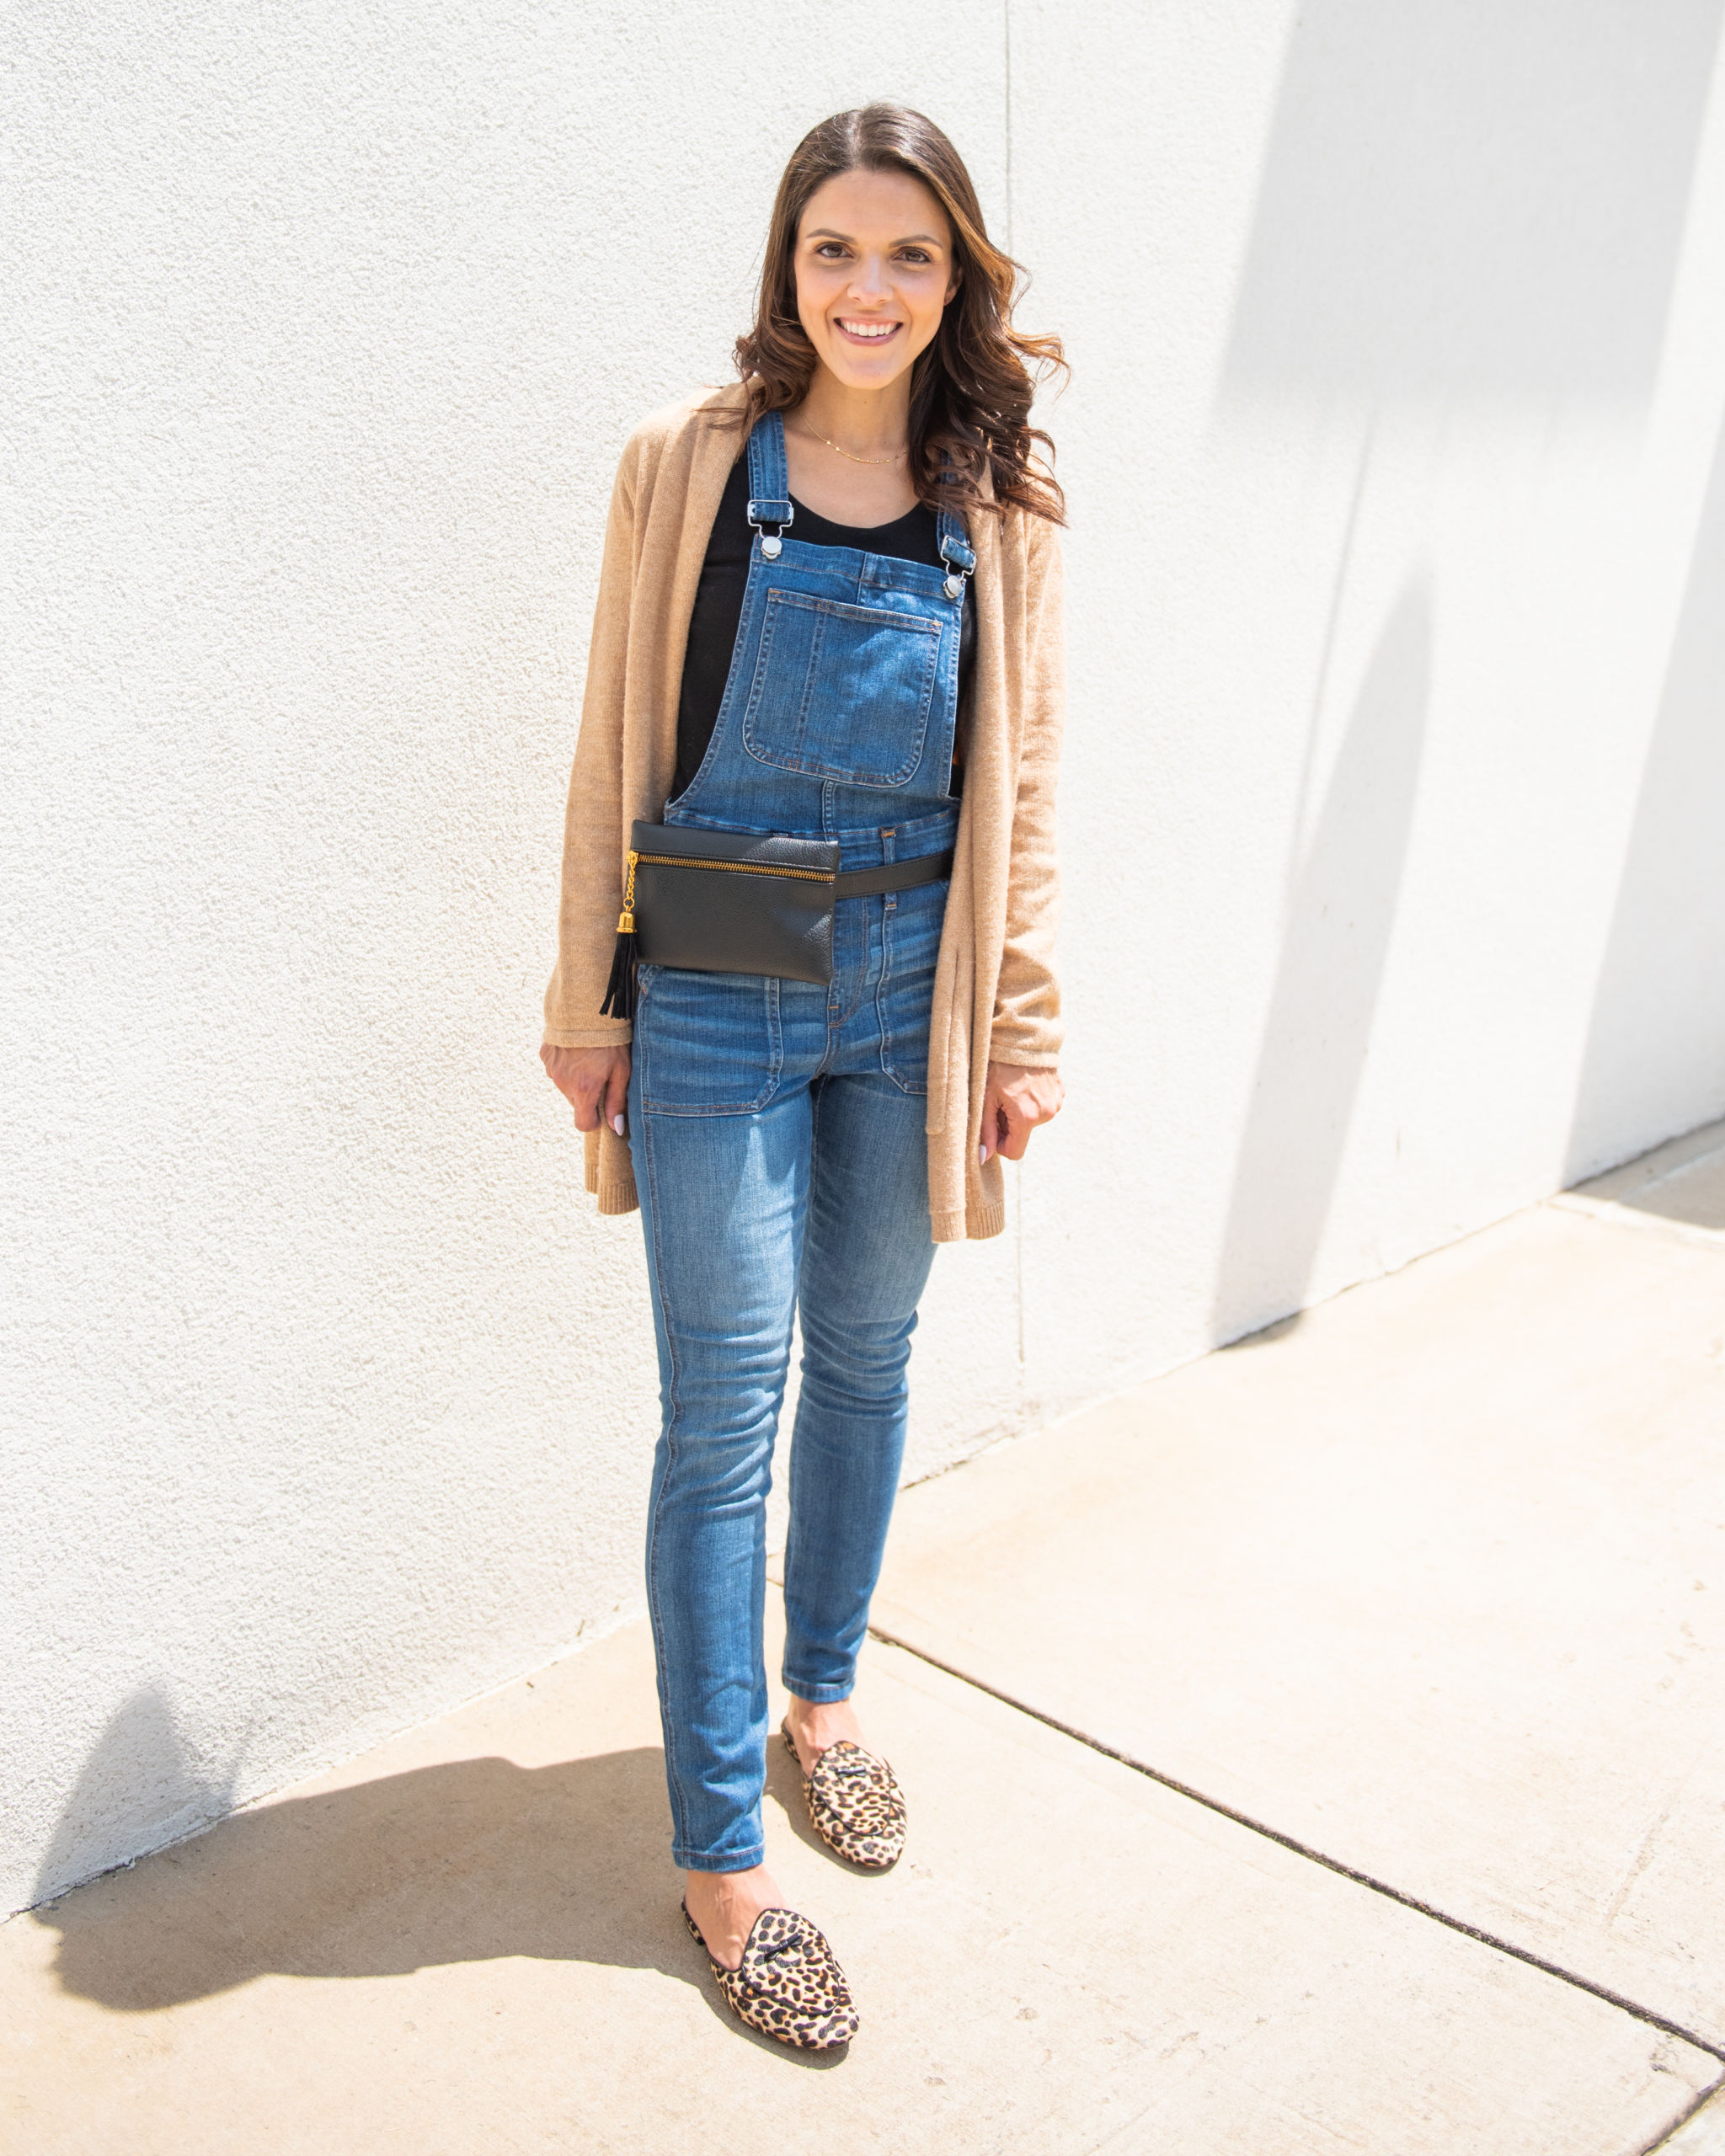 4 ways to transition skinny overalls to Fall